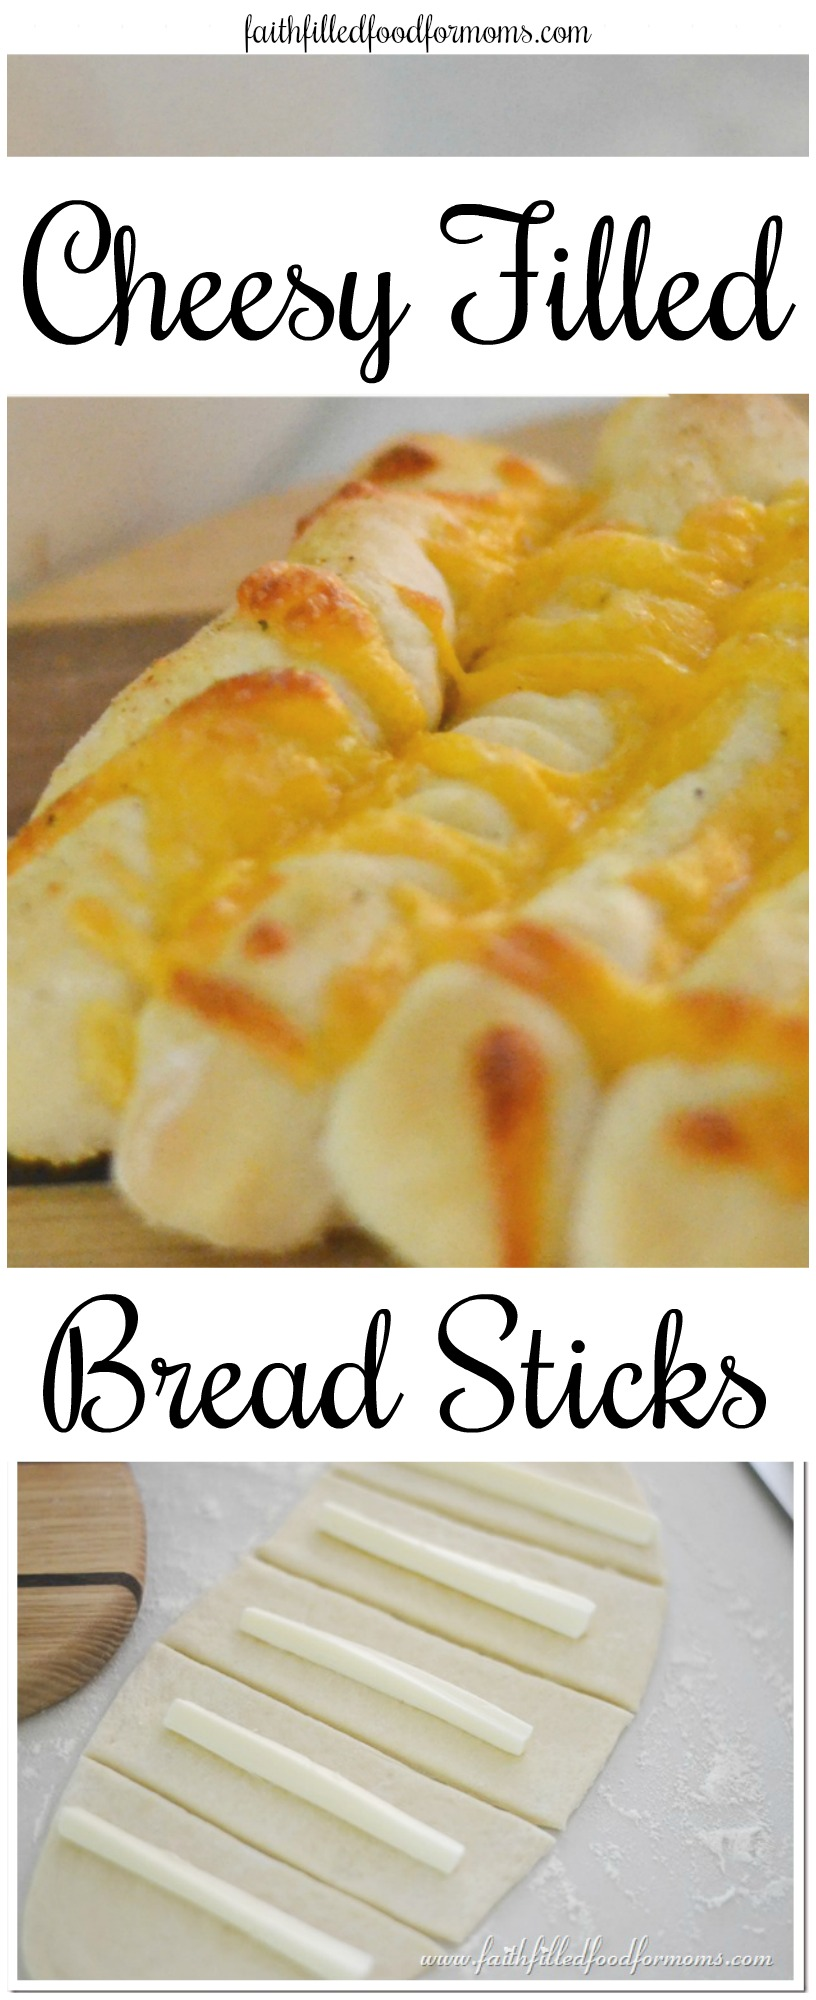 Homemade Cheese Filled Bread Sticks with homemade pizza bread dough! Easy recipe and delicious! #bread #cheese